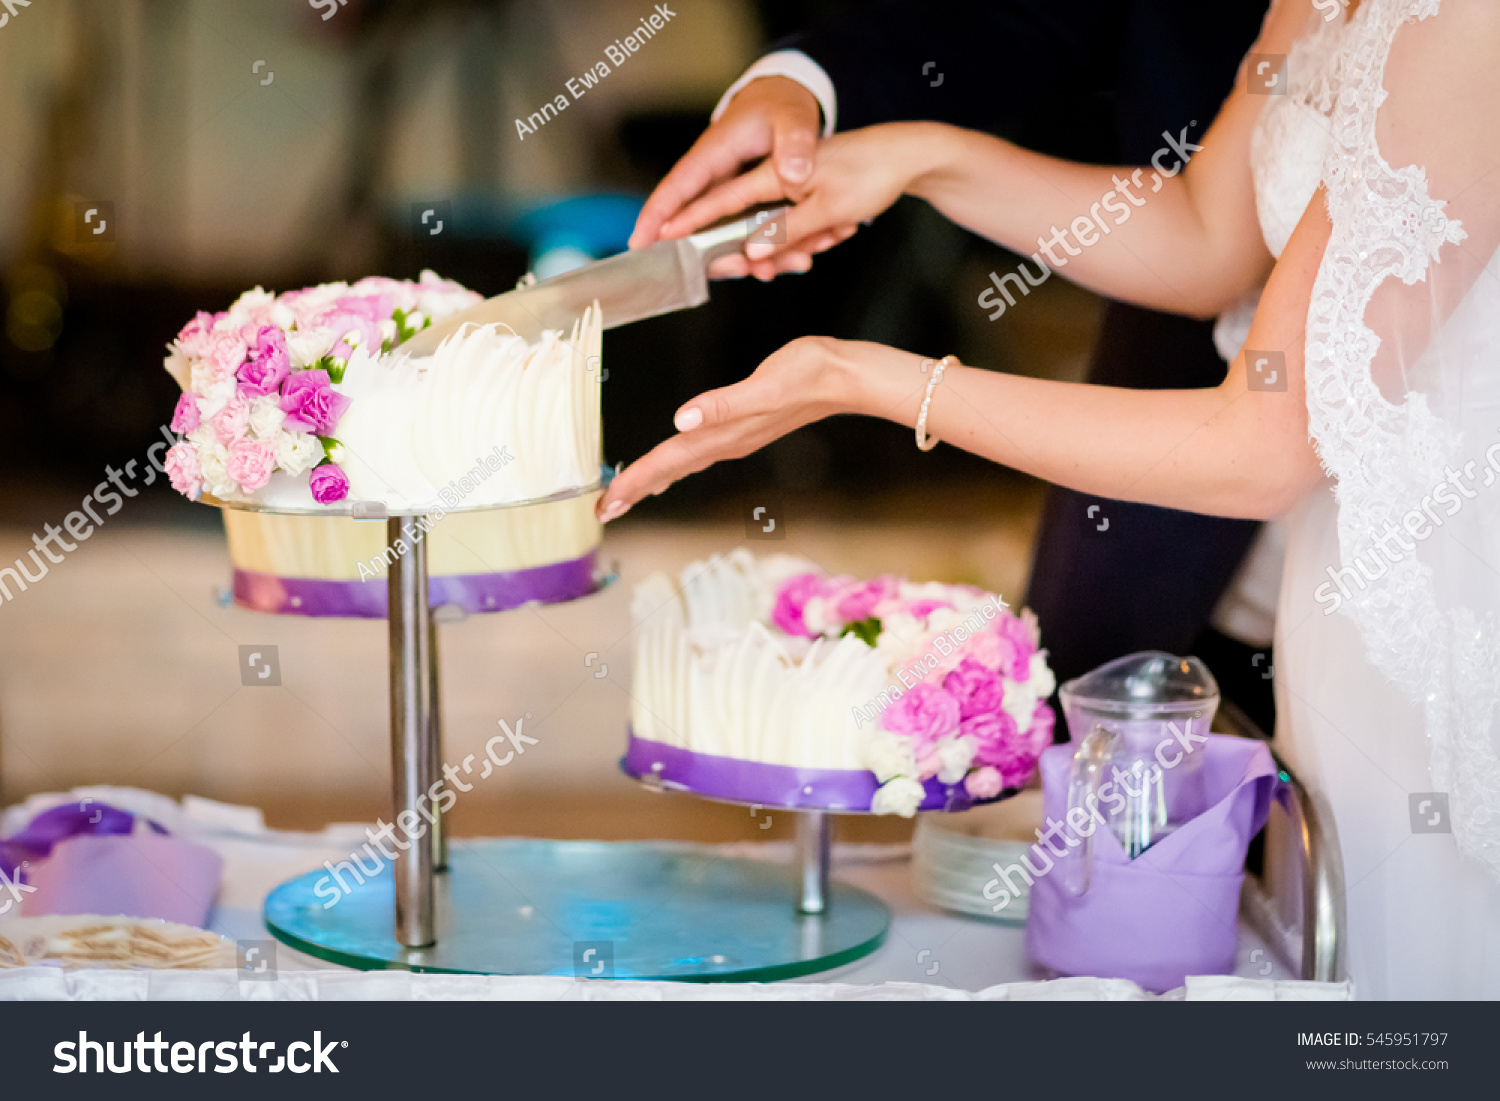 tradition behind wedding cake cutting beautiful wedding cake detail traditional stock 21221